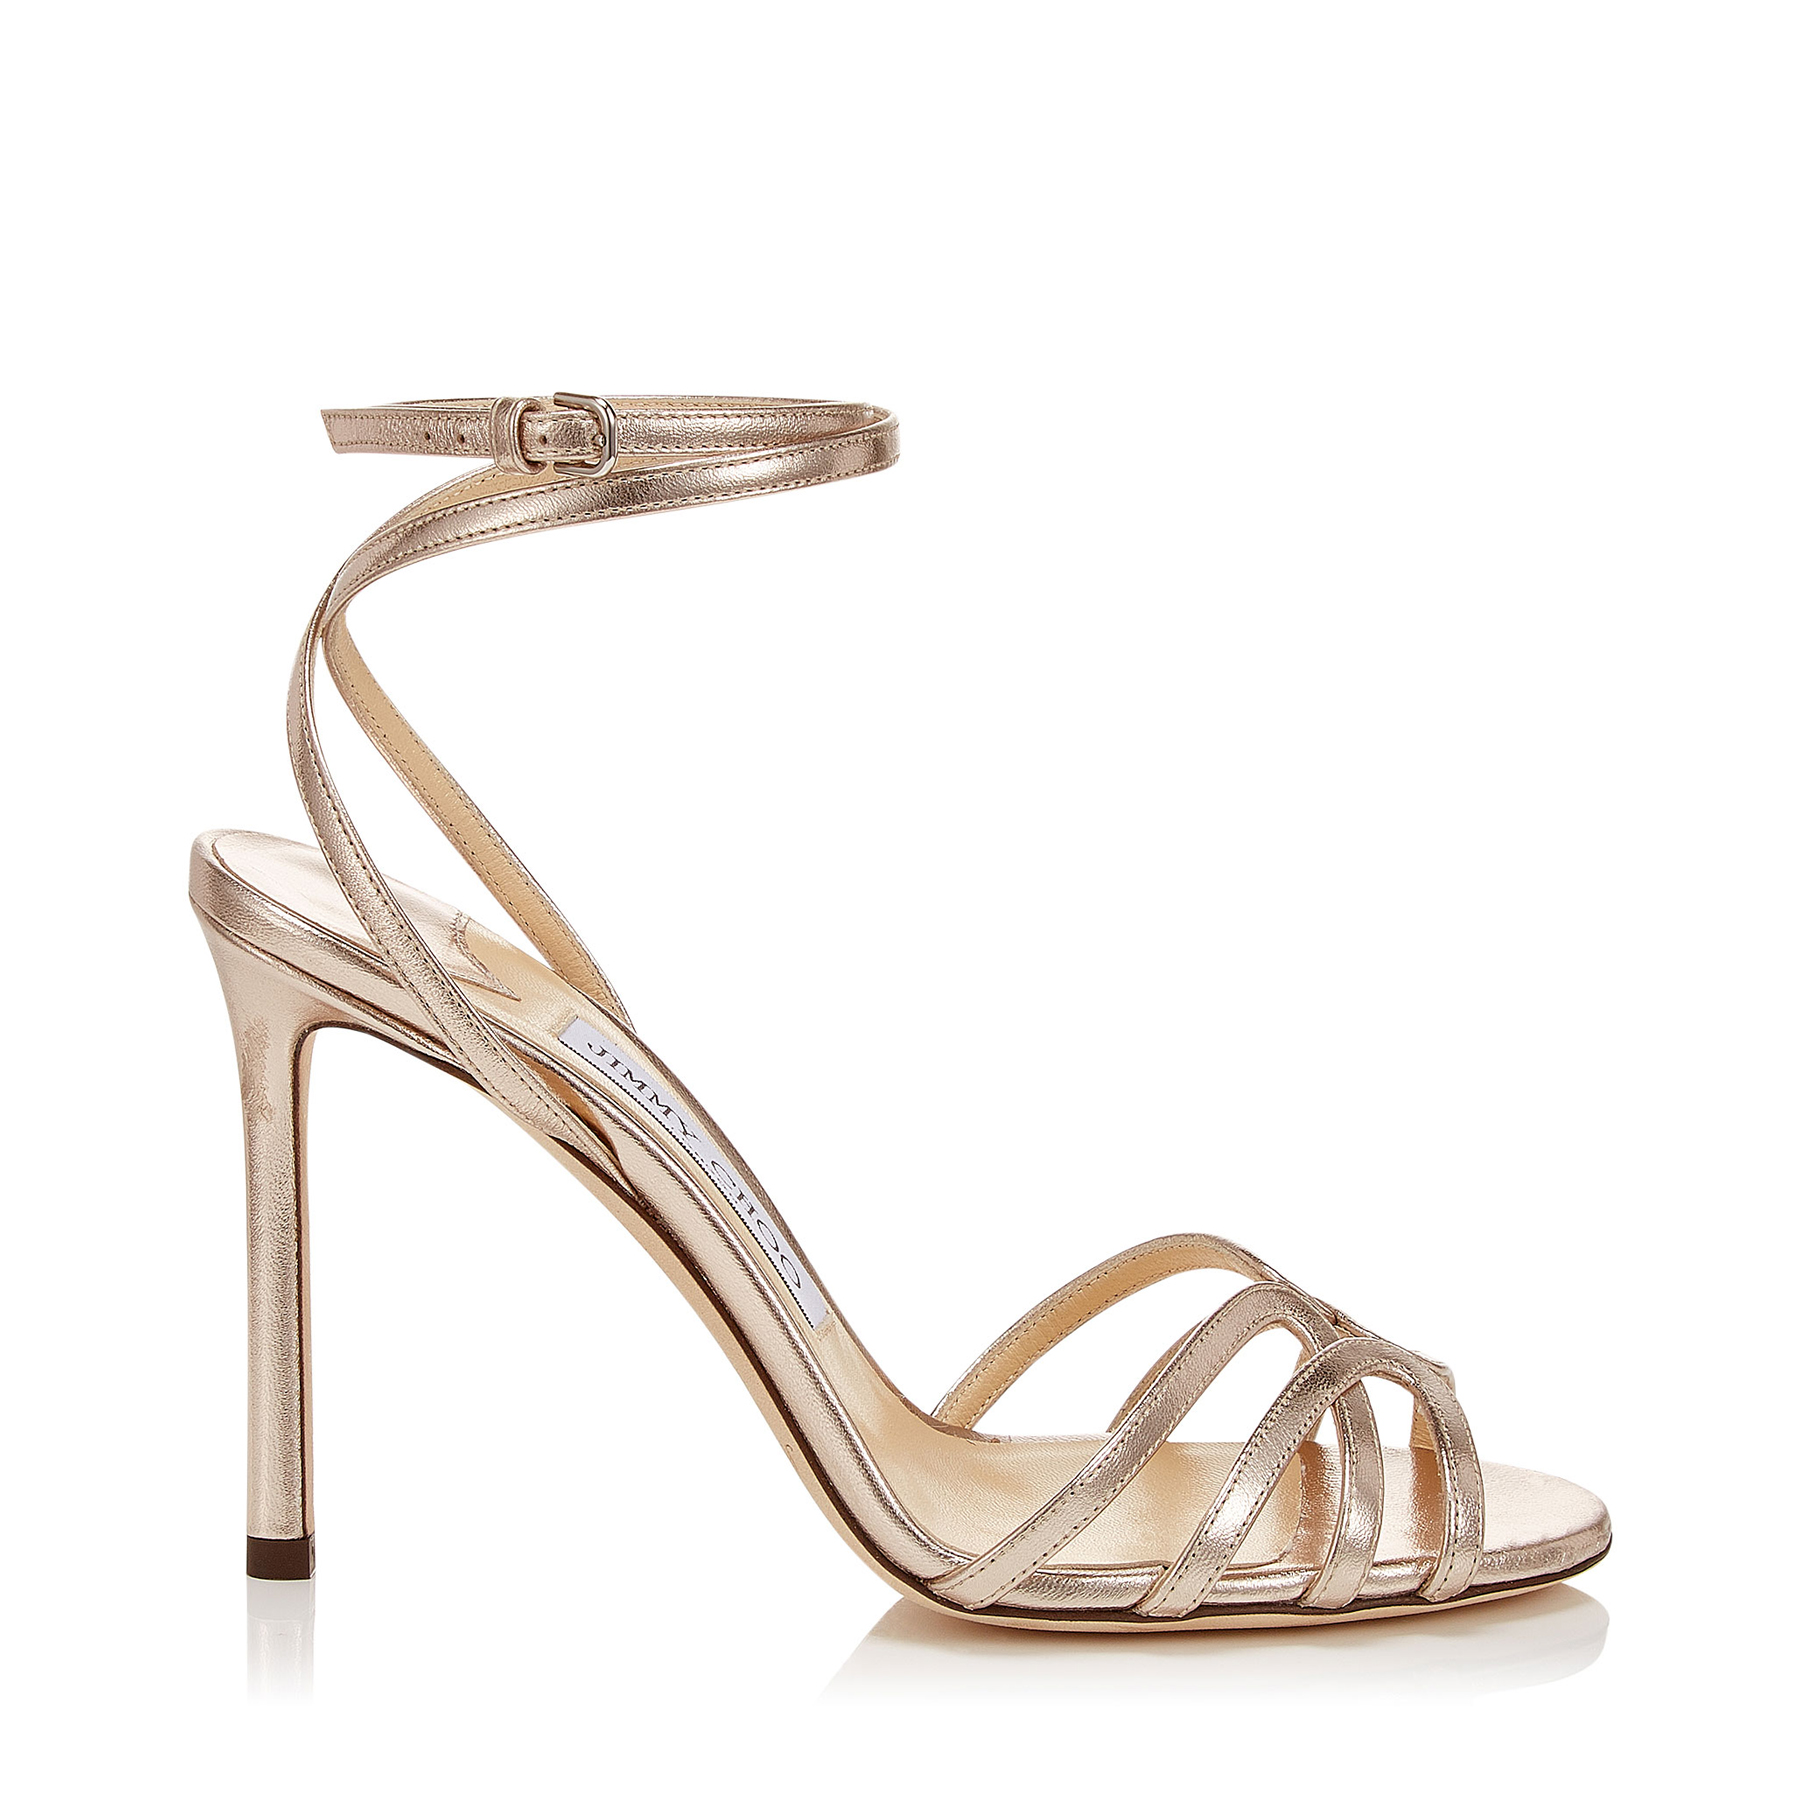 Jimmy Choo MIMI 100 - image 7 of 7 in carousel